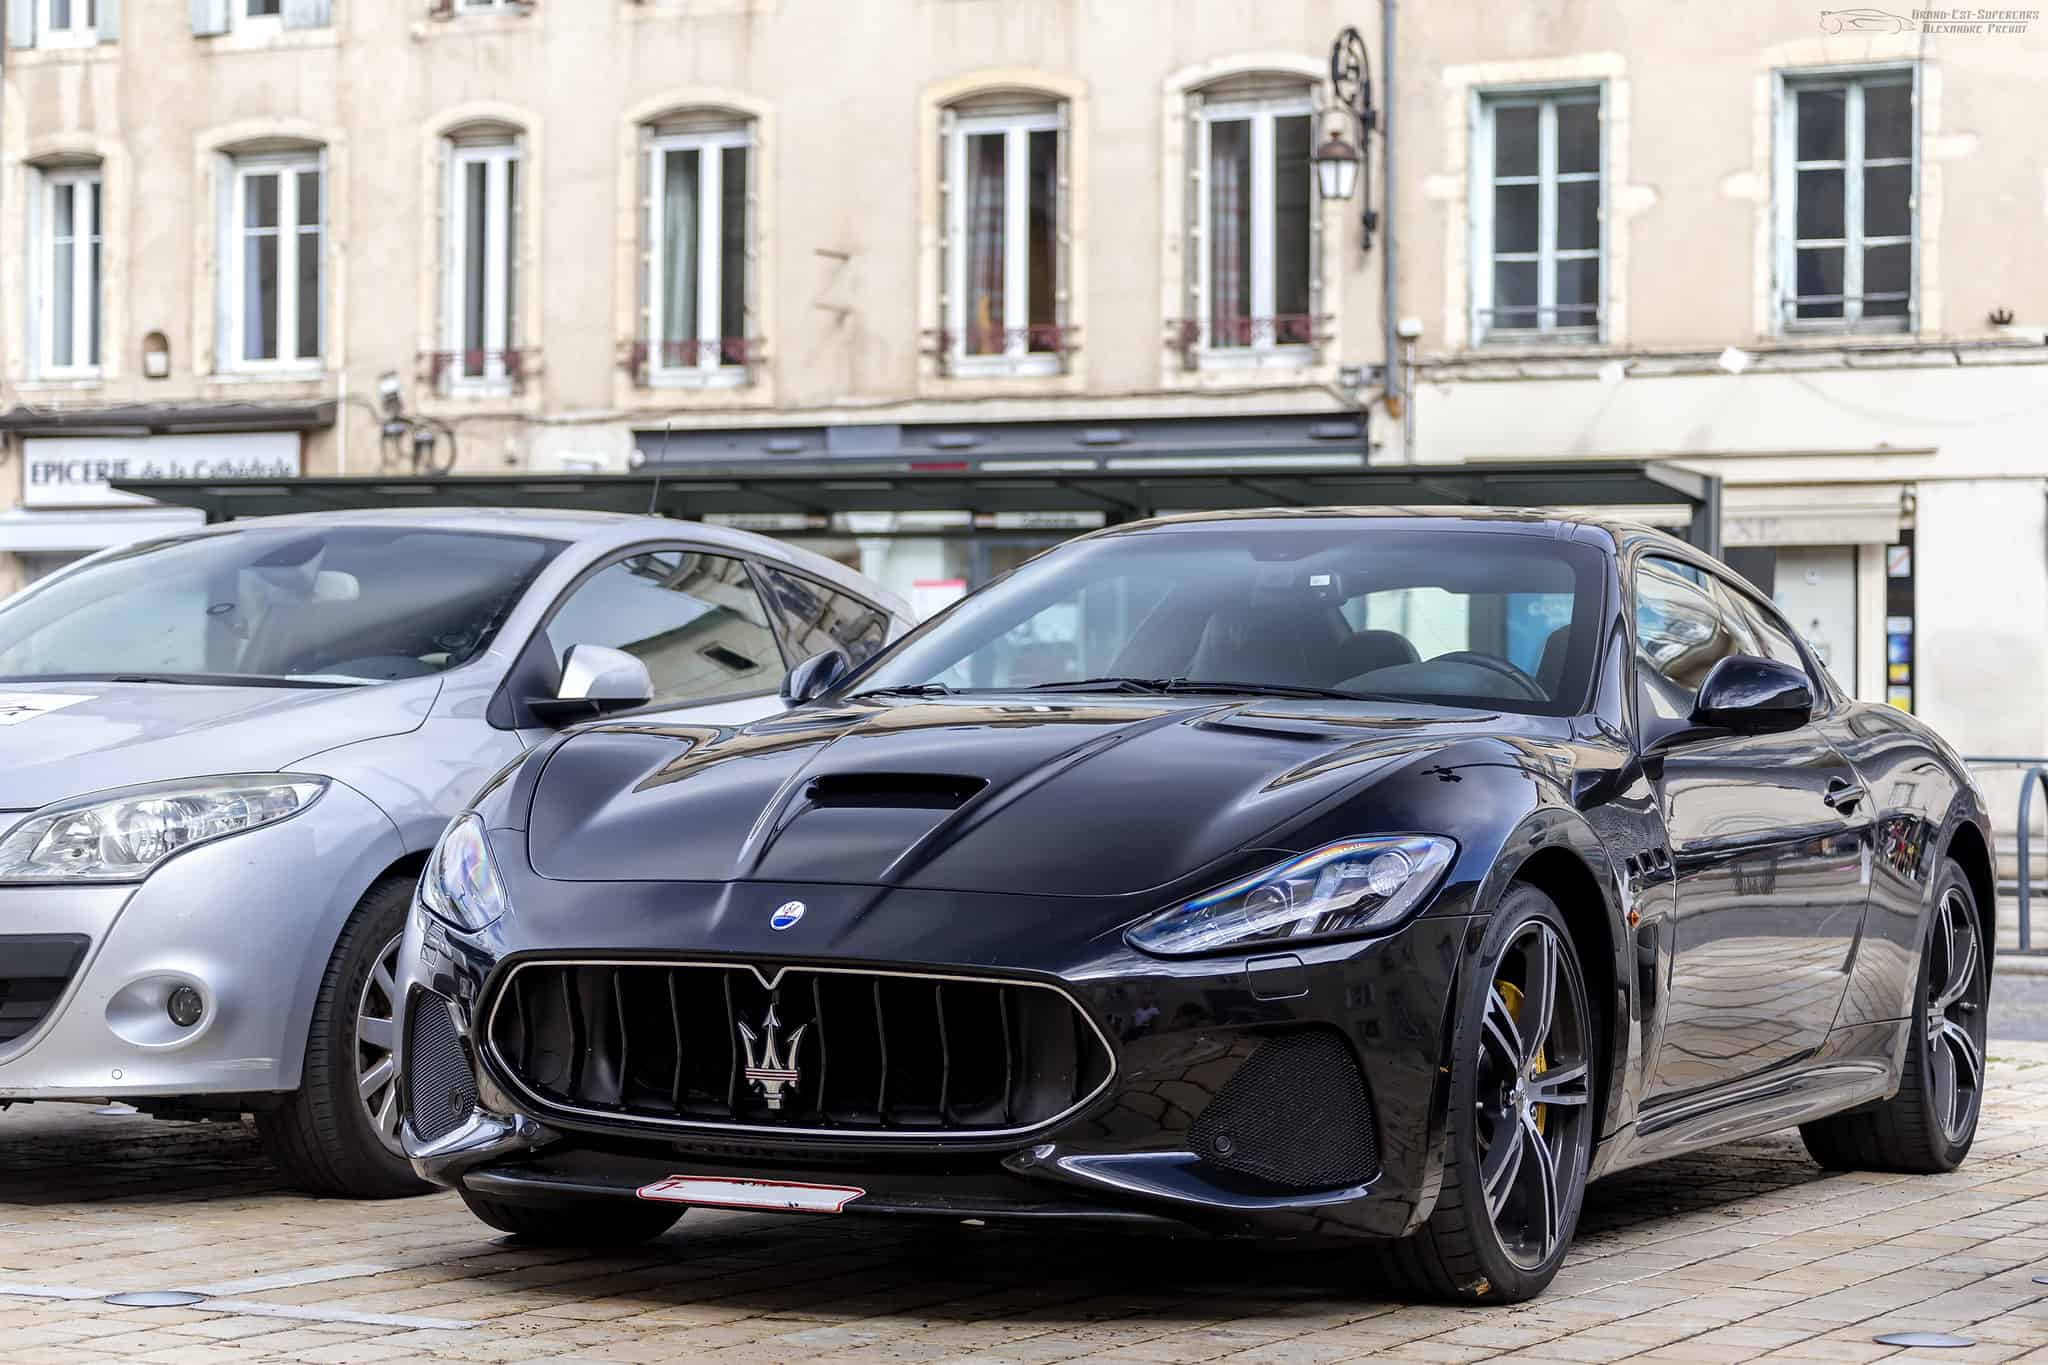 Maserati Grantturismo MC Stradable